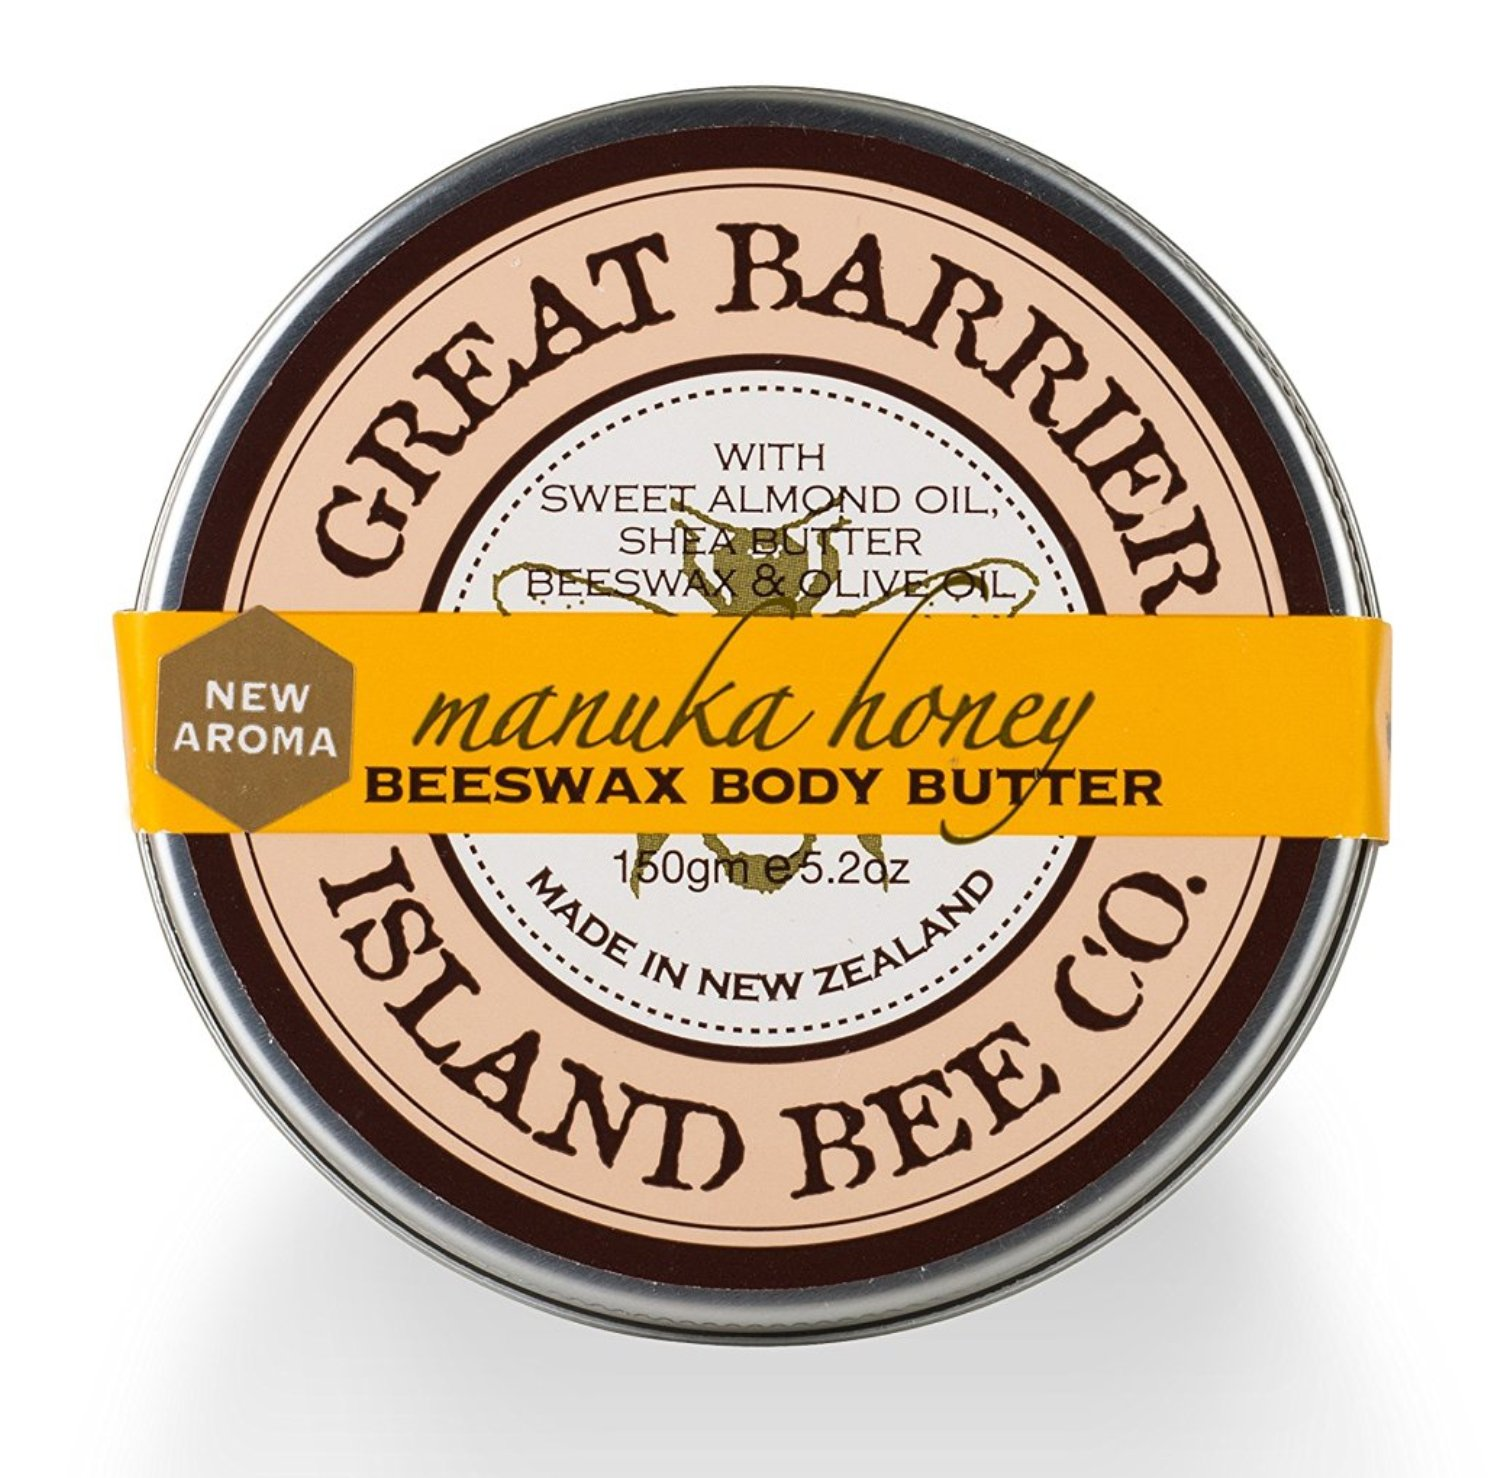 Vanilla Bee Beeswax Body Butter Pot 5.2 Ounces Great Barrier Island Bee Co